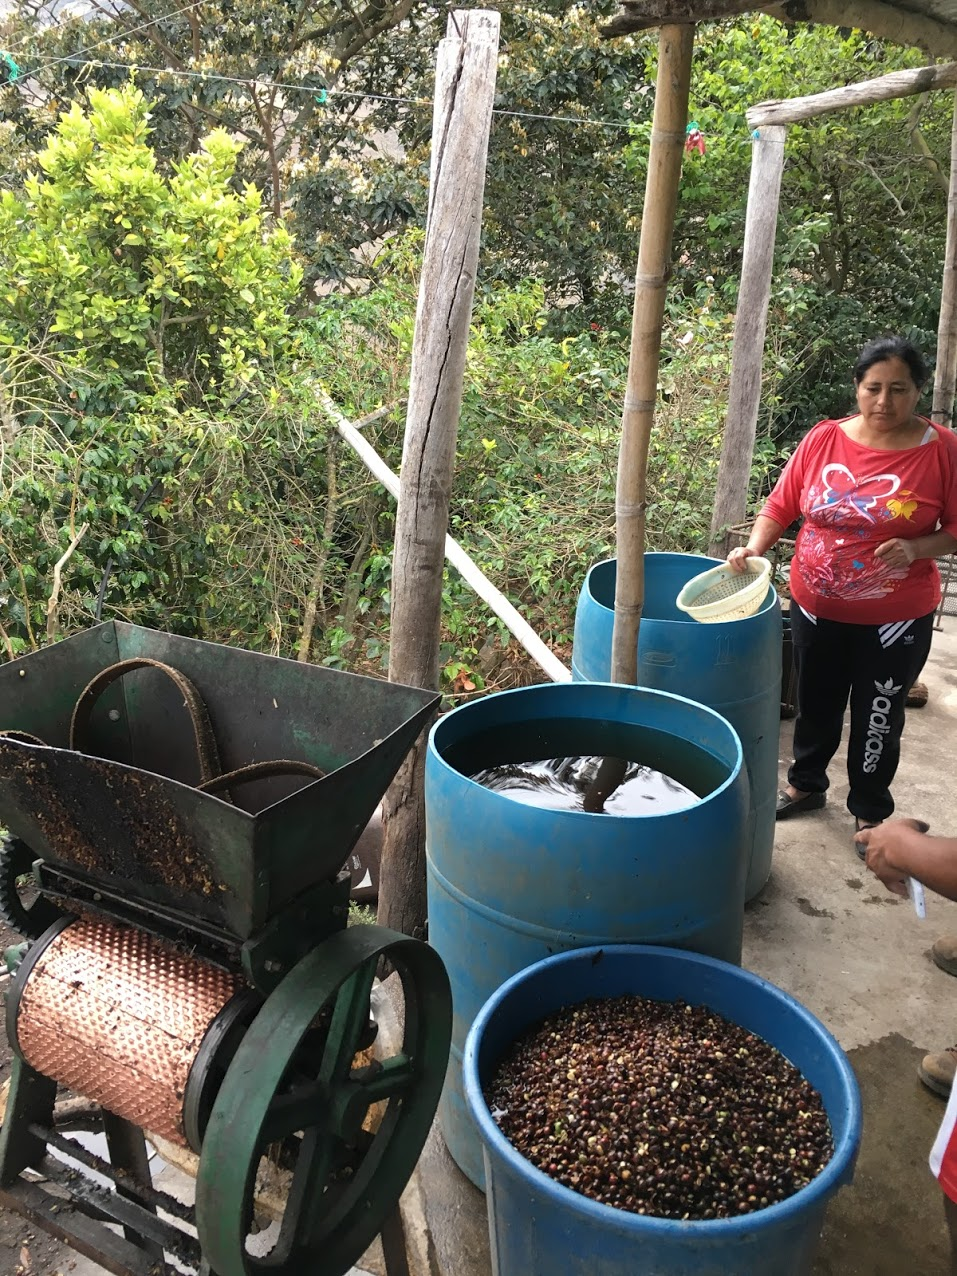 Dorys Tiamana: One of the higher scoring coffees, produced with a typical small holder set-up.